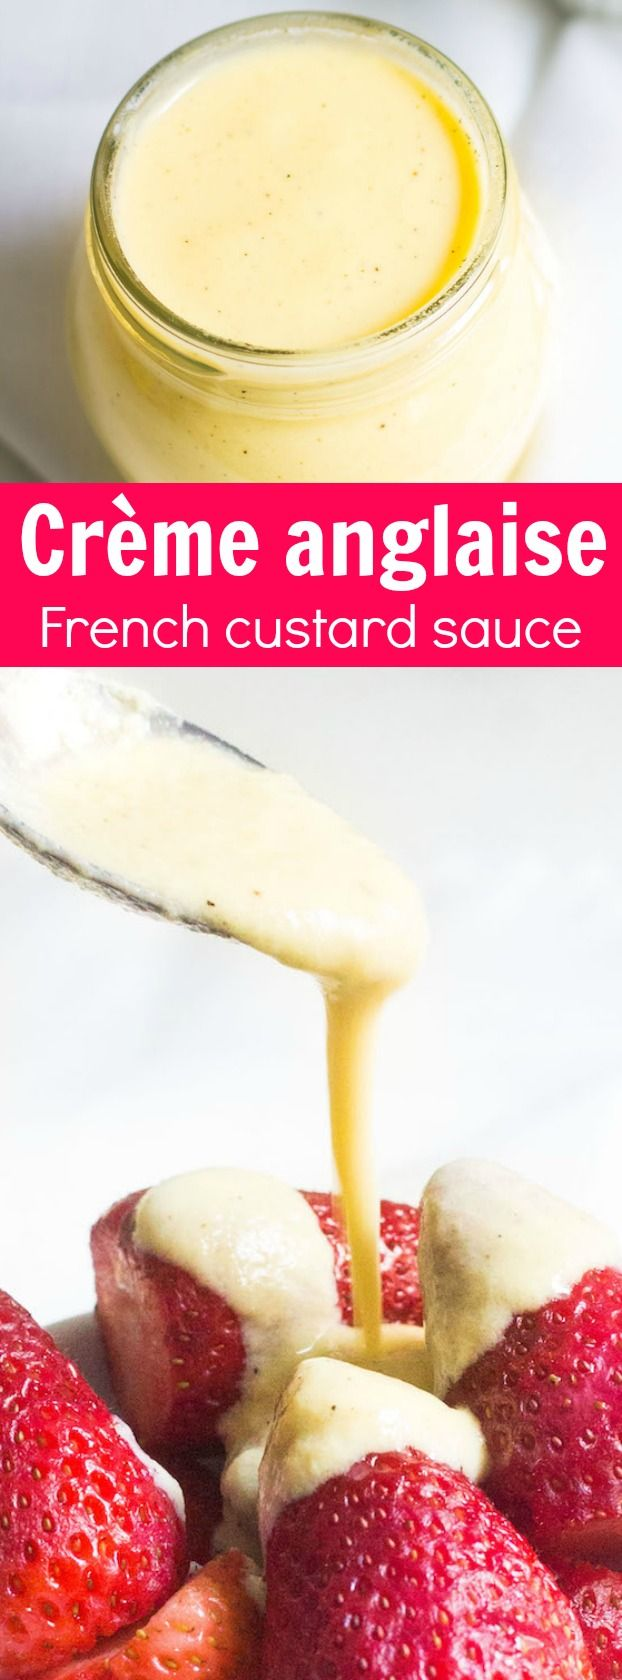 Crème anglaise: a French custard often served as a dessert sauce for cakes and pastries. Recipe via MonPetitFour.com